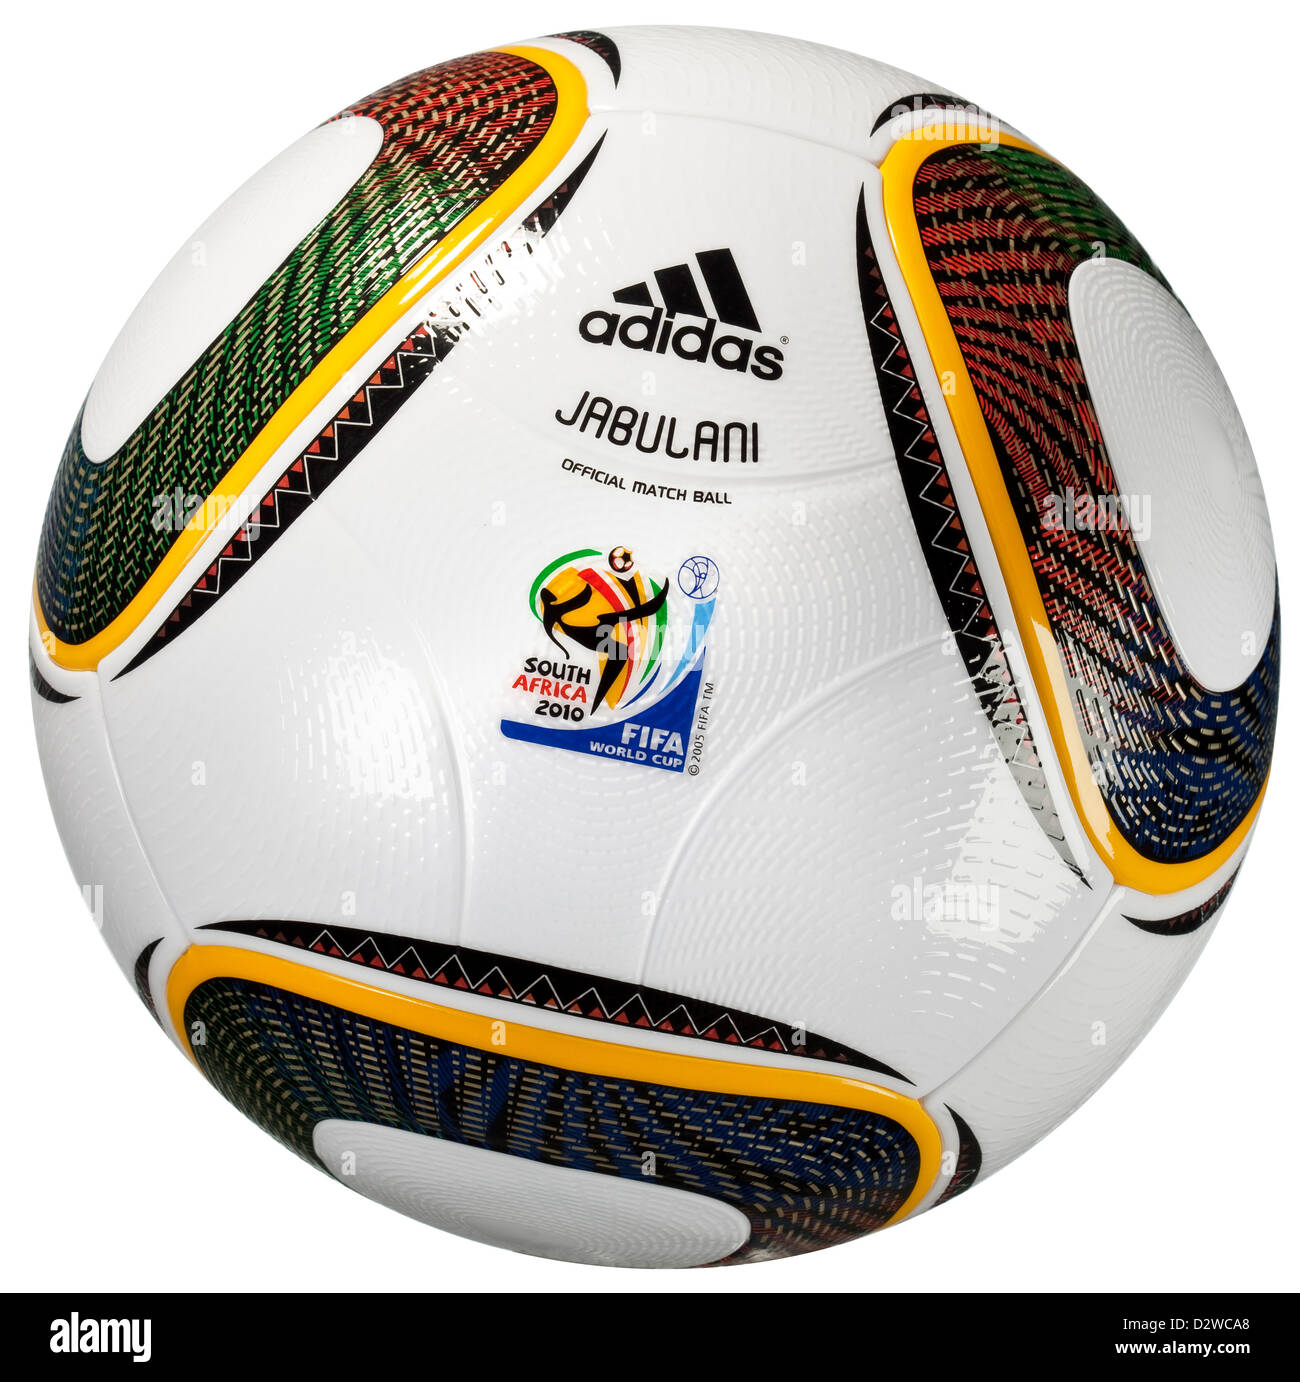 super popular 21e88 ef049 Germany, Adidas JABULANI, official ball of the FIFA World Cup 2010